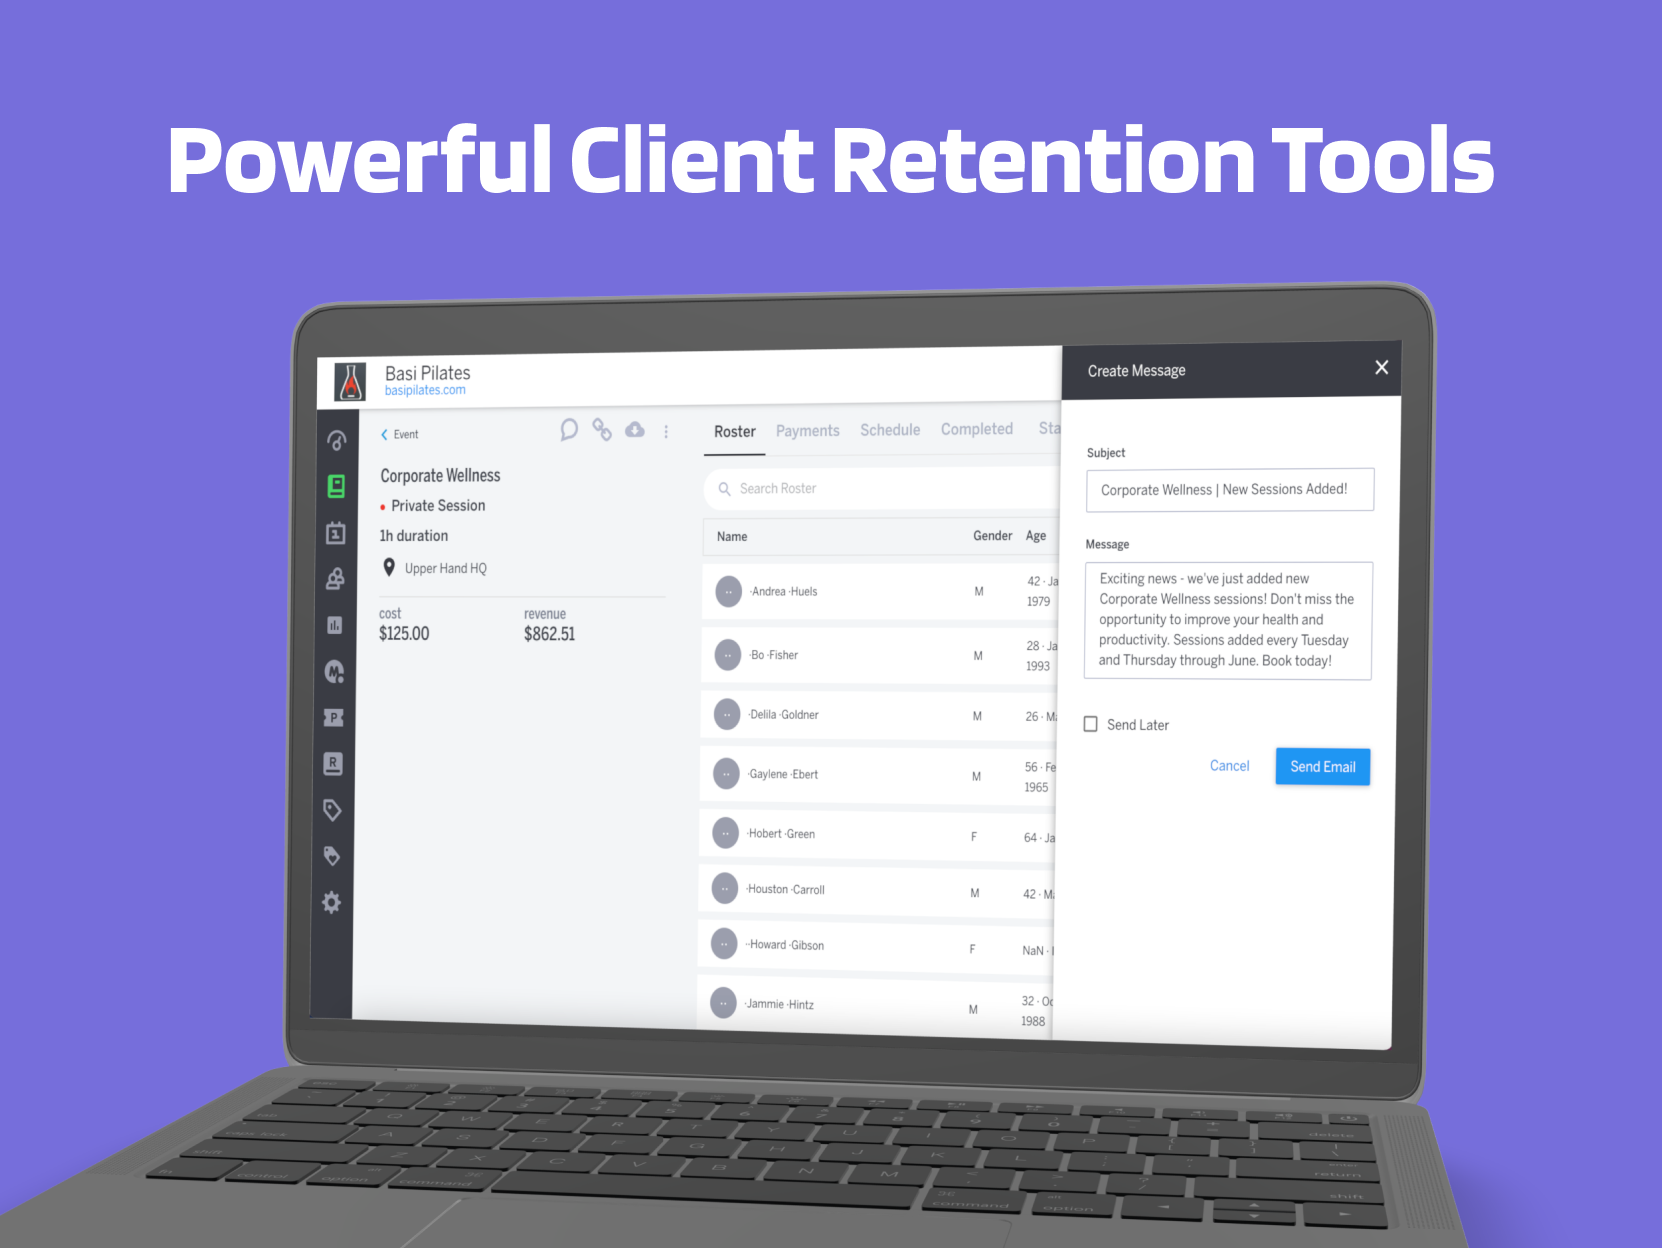 Upper Hand Software - Flexible contact management and marketing tools help build your book of business while eliminating costs for third-party services. Maximize marketing ROI with contact reporting like heat maps, login dates, and purchasing trends.